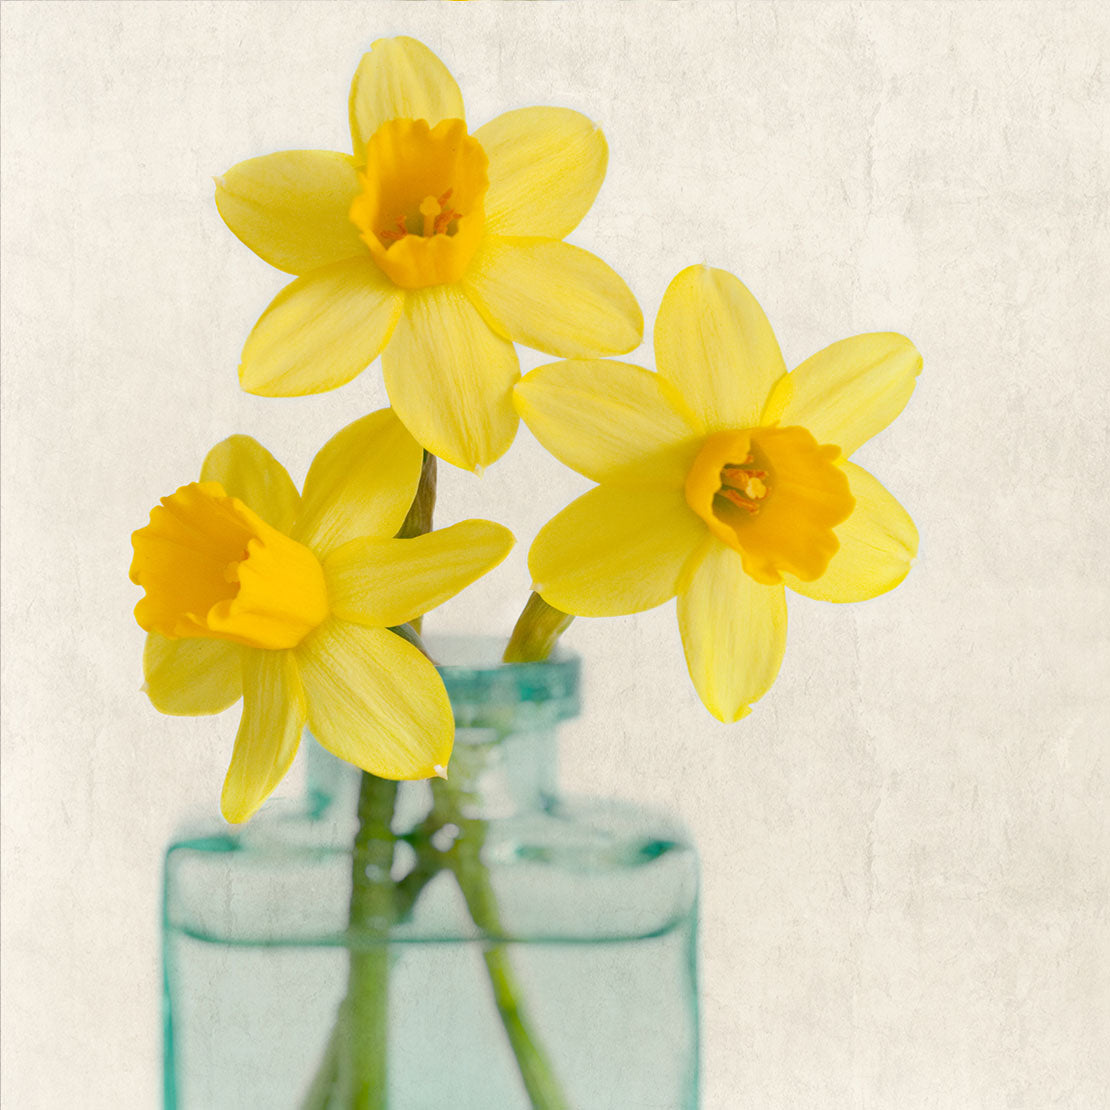 yellow daffodils still life print